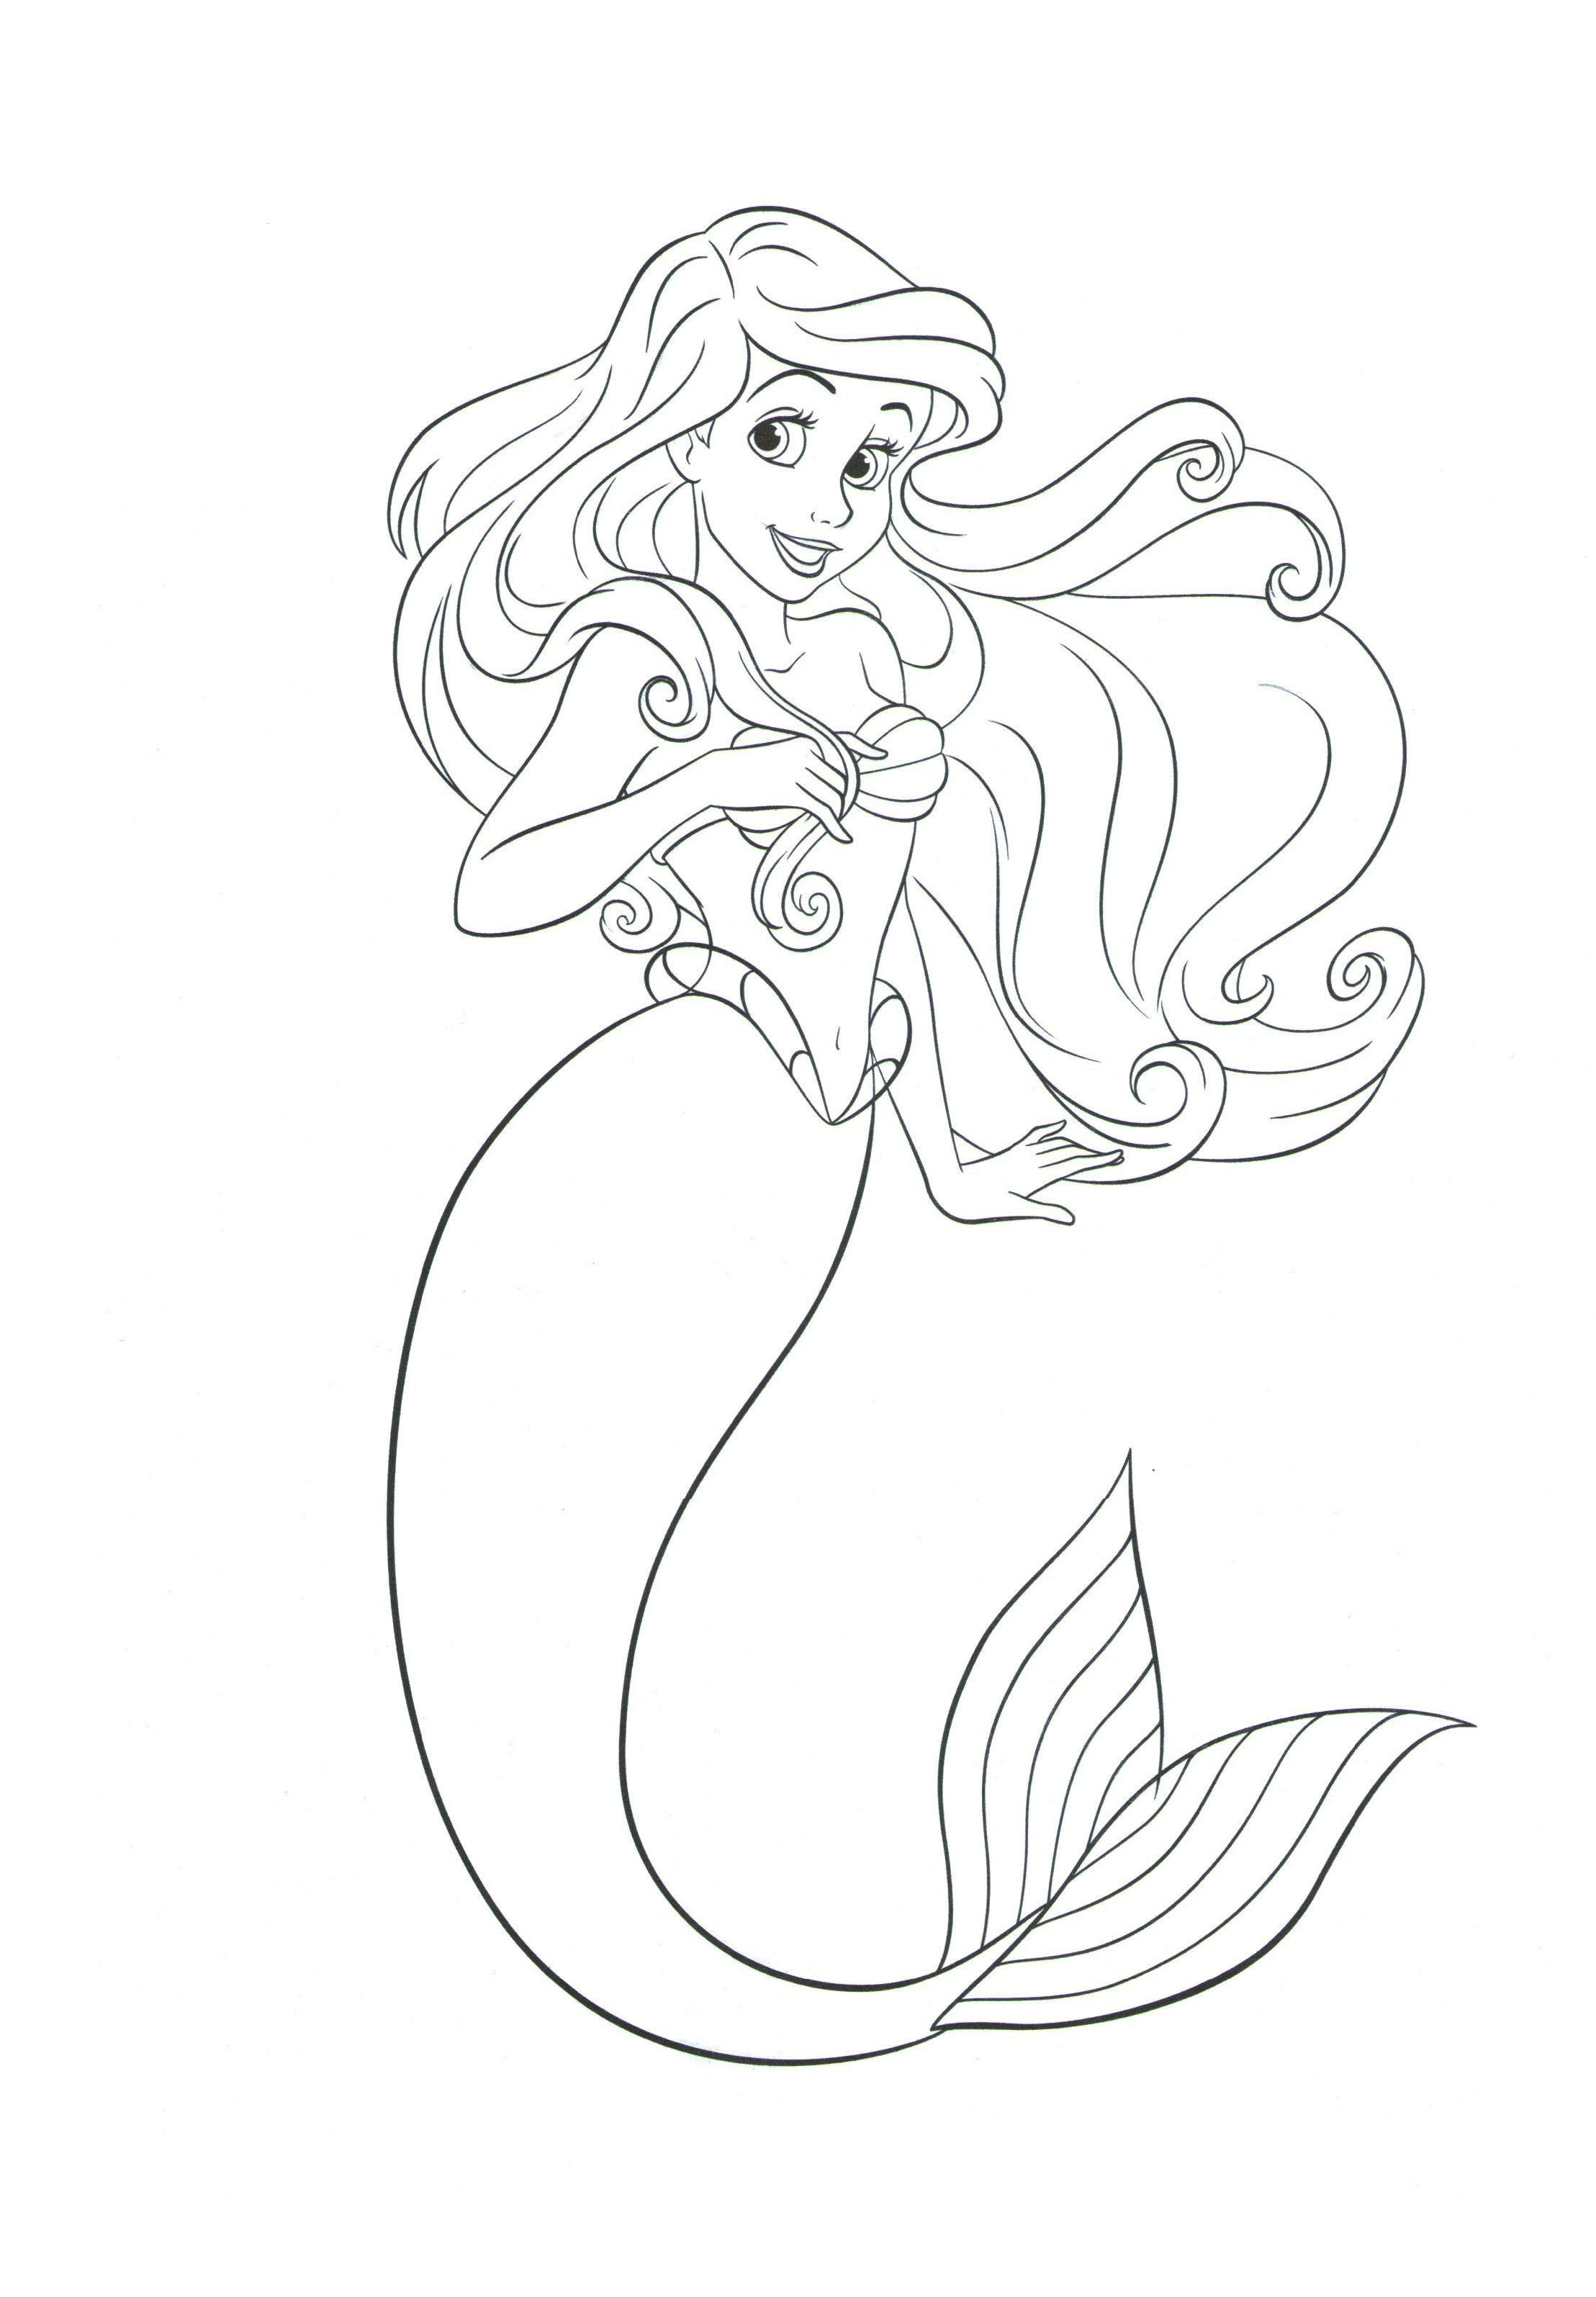 Pin By Mar Bello On Printables Disney Coloring Pages Mermaid Coloring Book Princess Coloring Pages